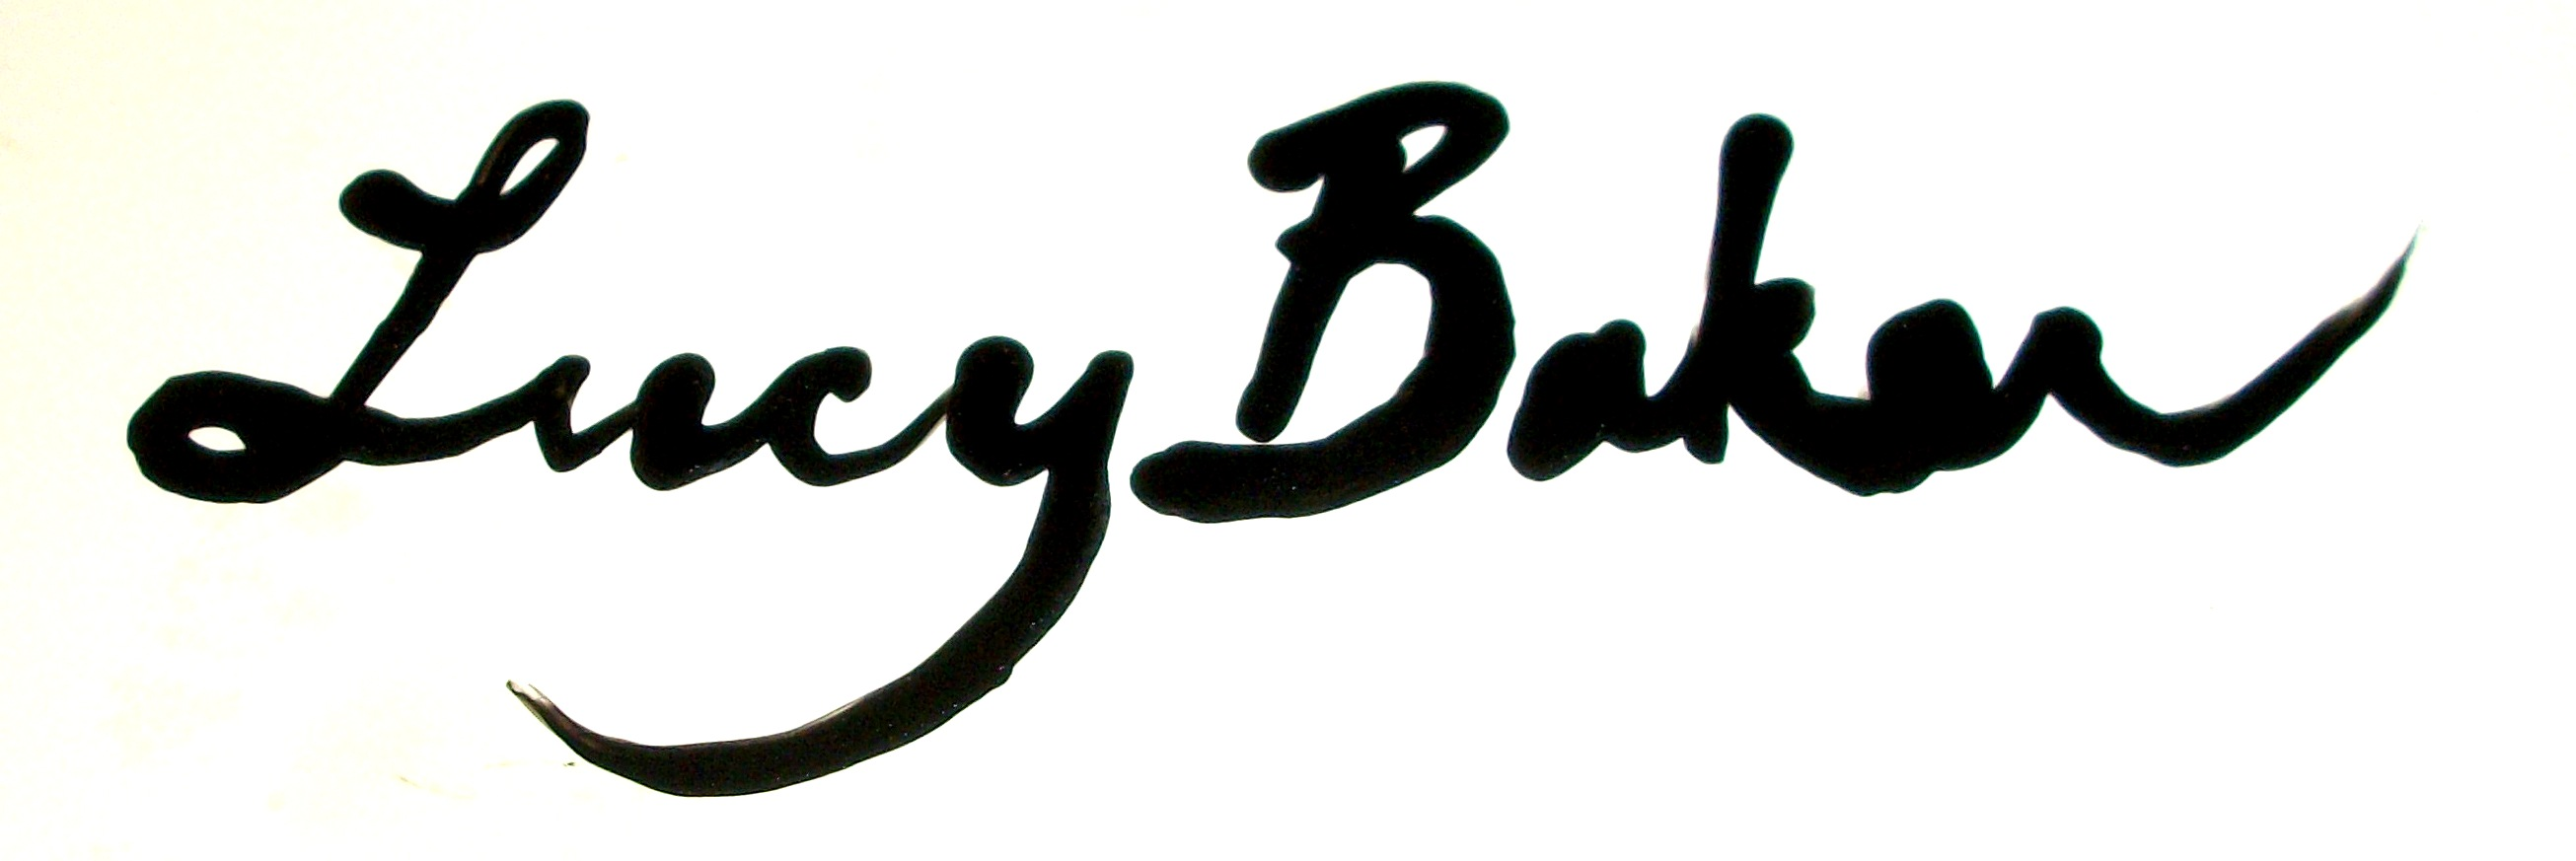 Lucy Baker's Signature